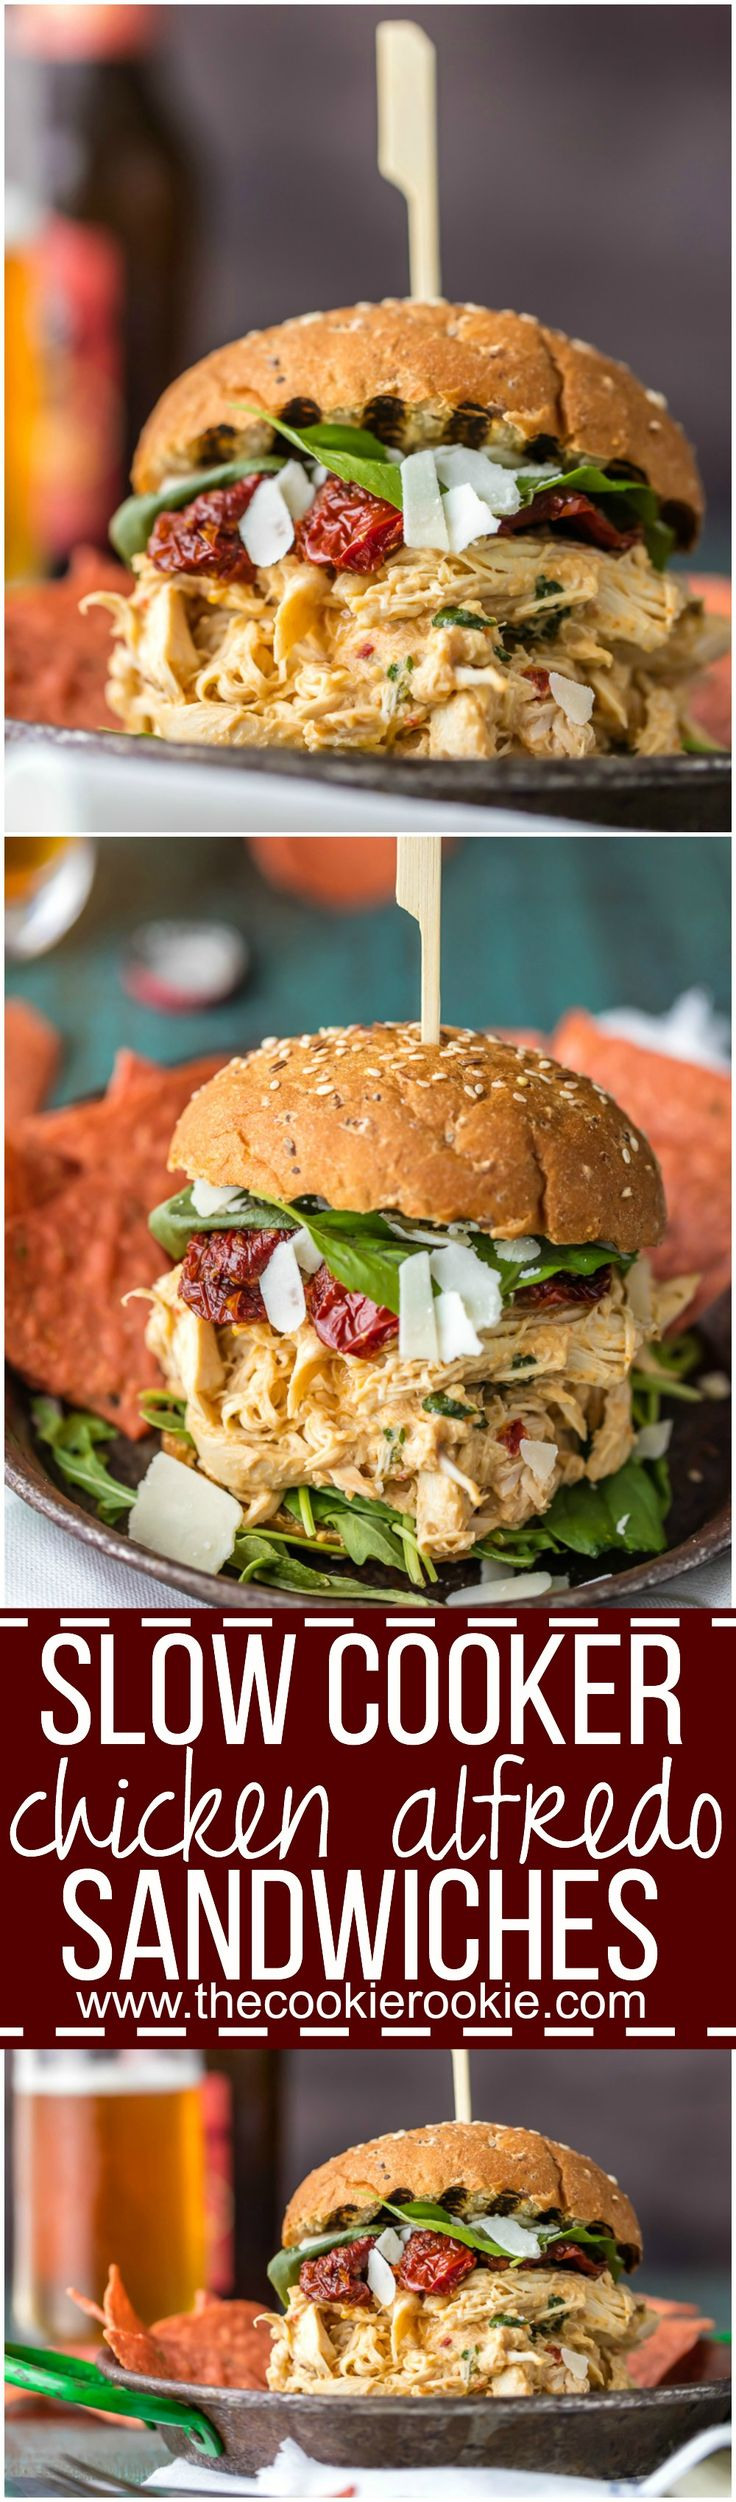 These SLOW COOKER CHICKEN ALFREDO SANDWICHES are simple, easy, and delicious. A quick and easy crockpot meal the…